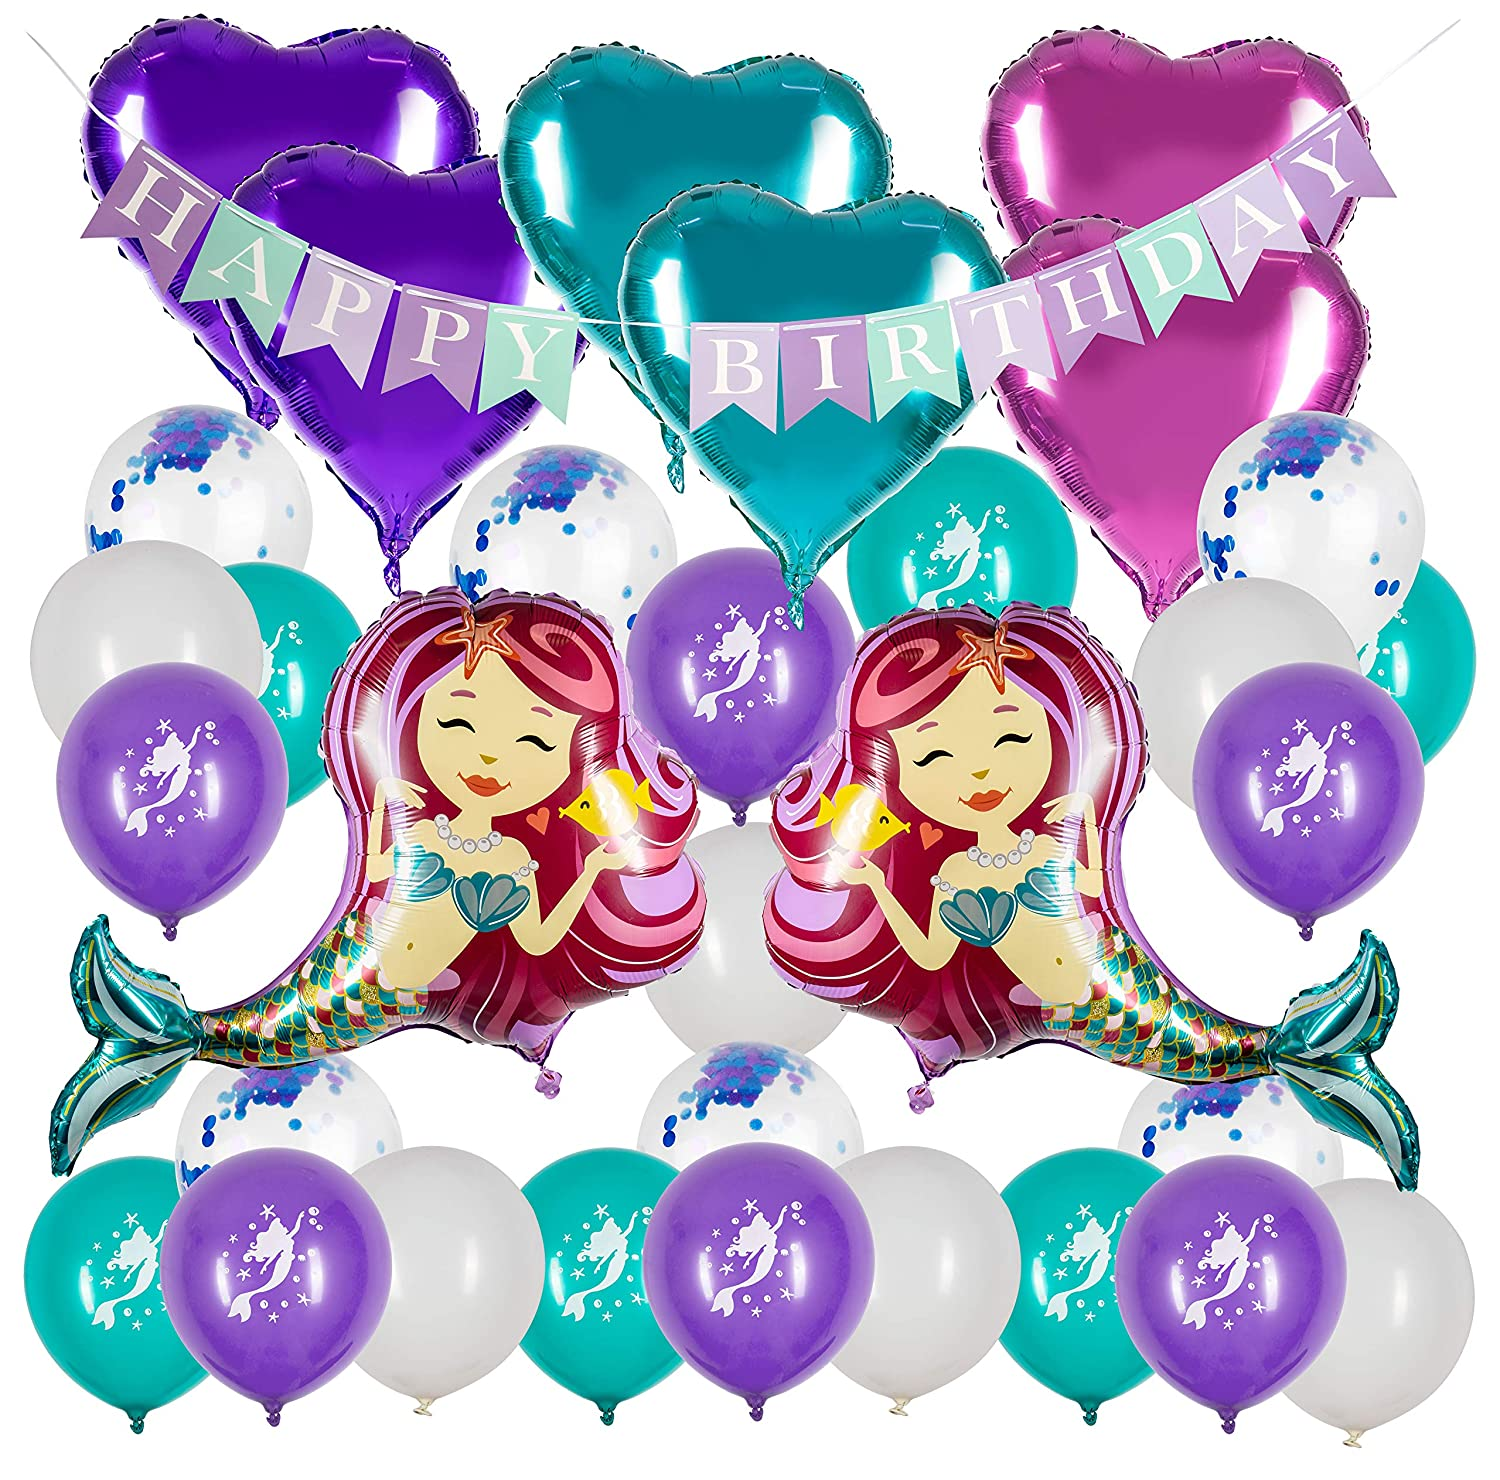 Mermaid Party Supplies - Mermaid Decorations - Mermaid Balloon - Happy Birthday Banner - Under The Sea Theme – Mermaid Birthday Party Supplies Joeyfrad